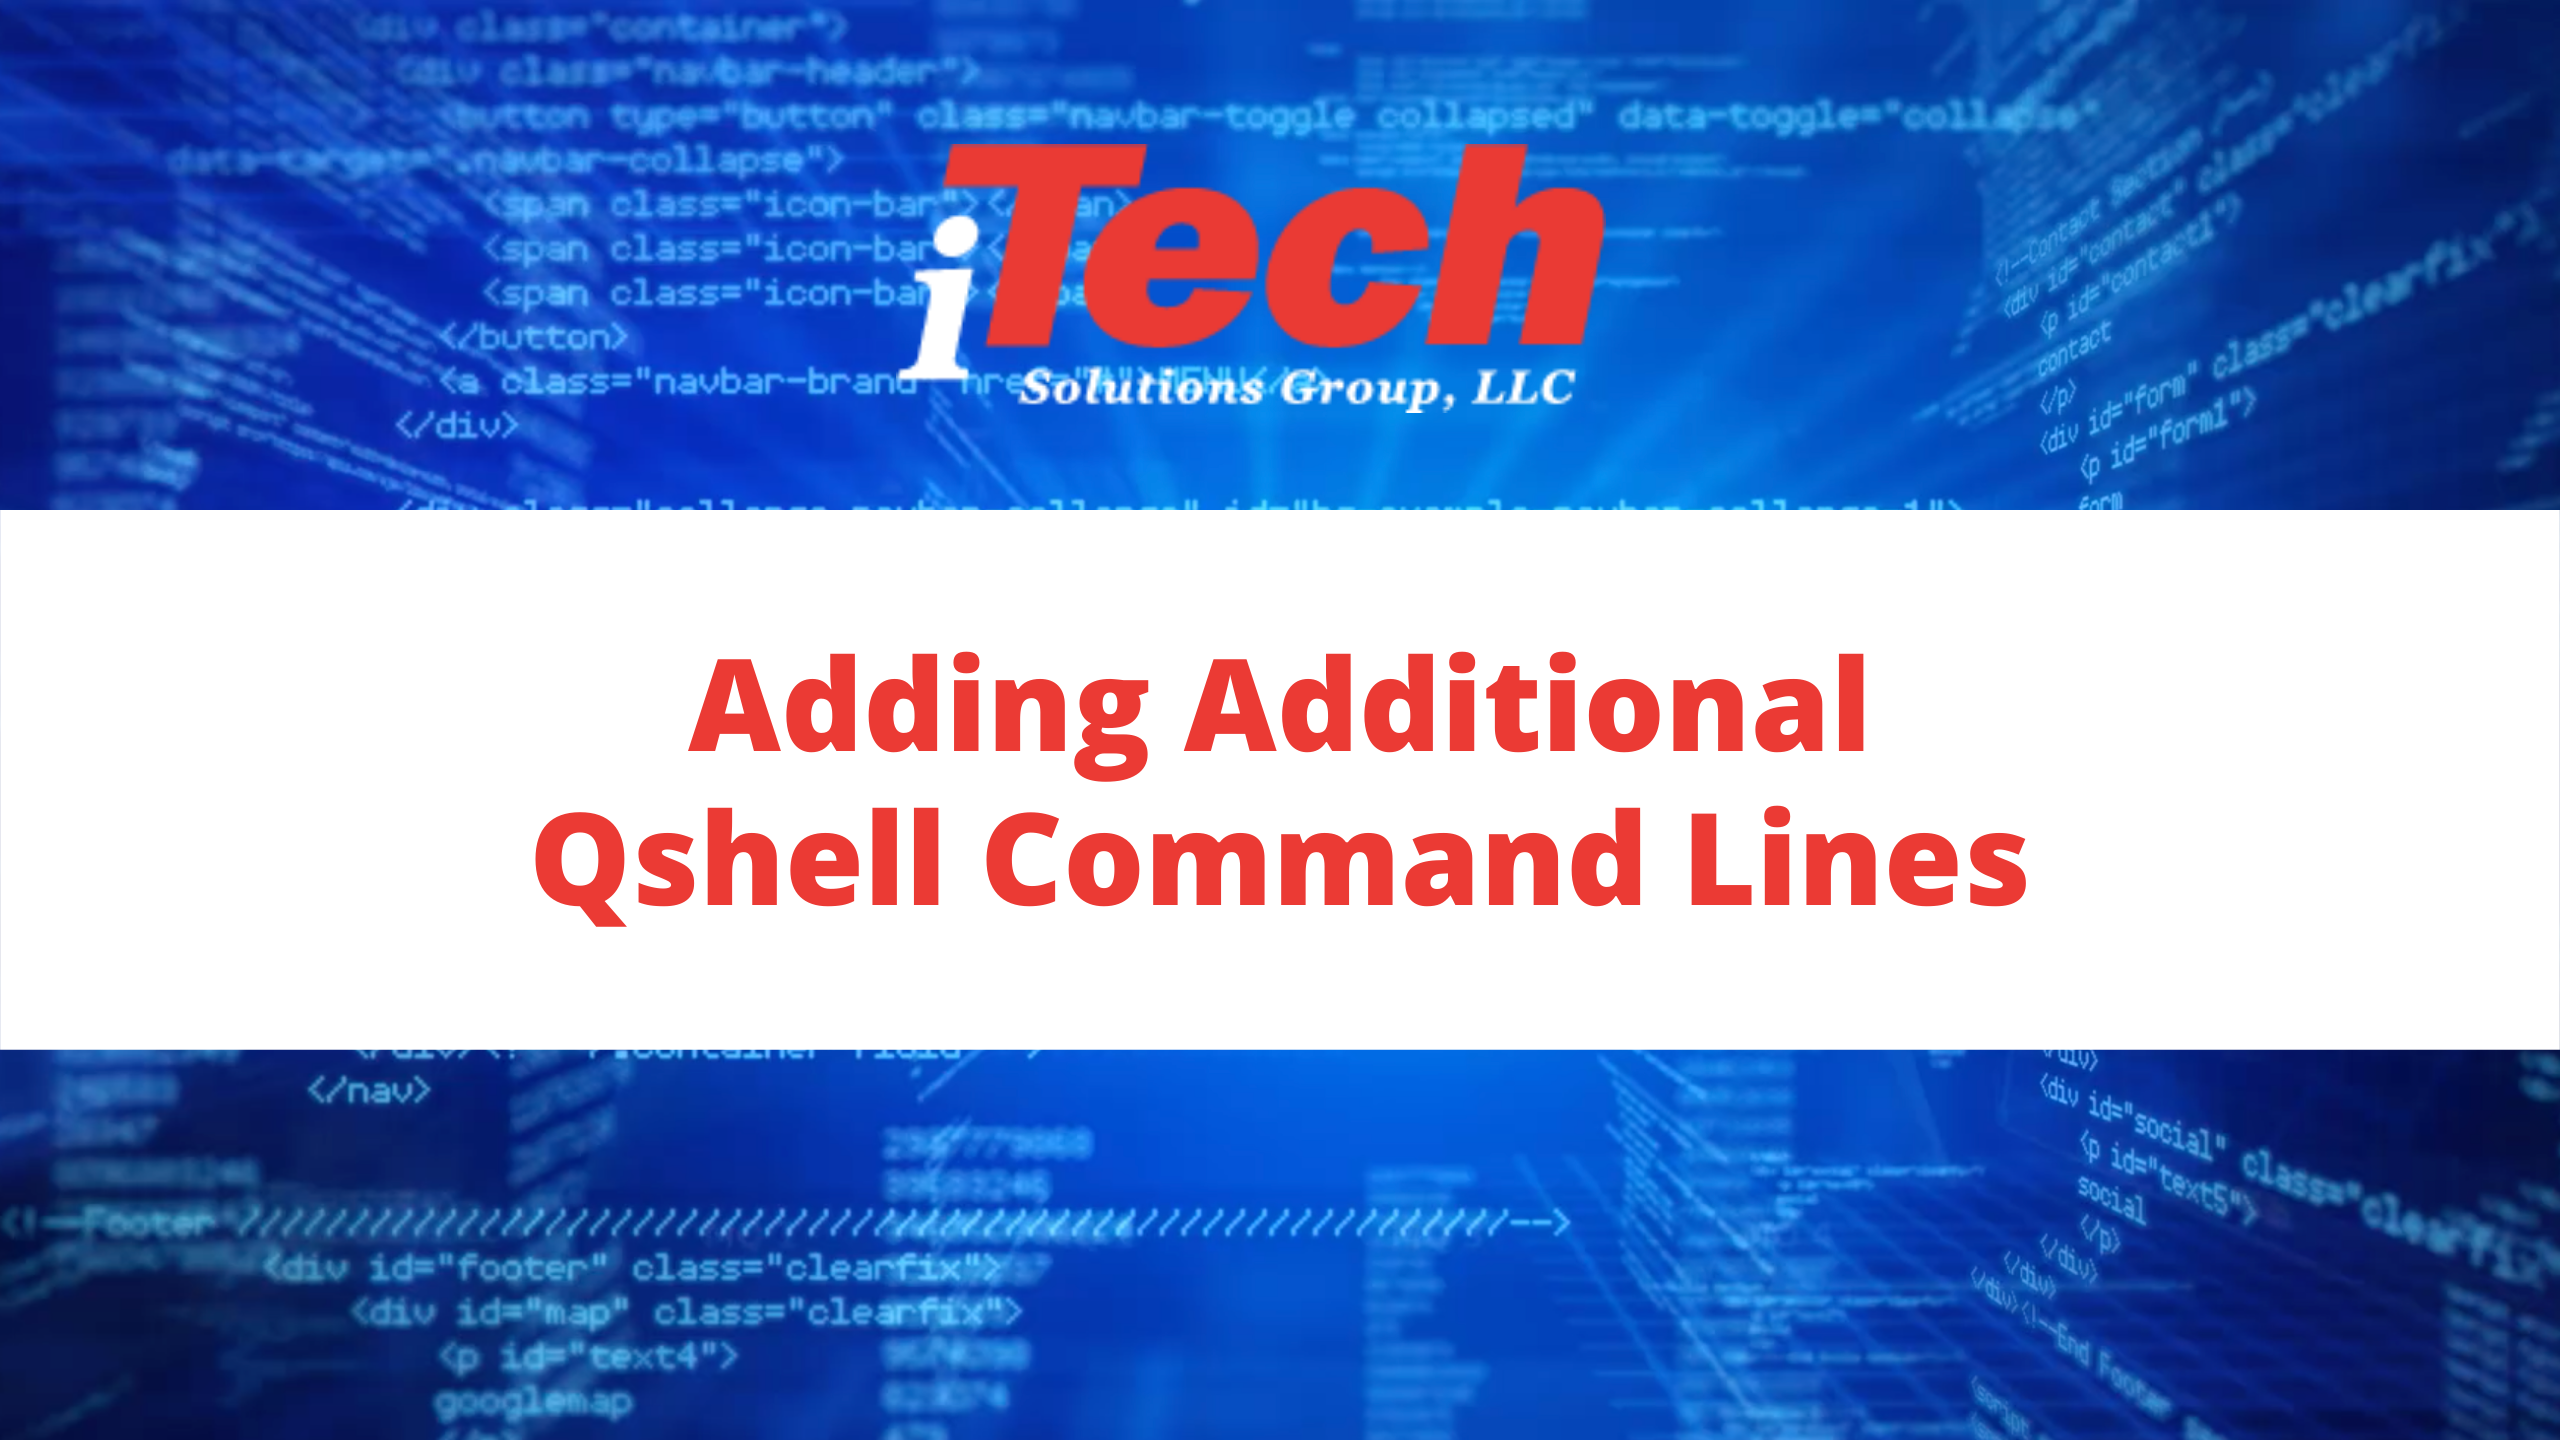 Adding Additional Qshell Command Lines